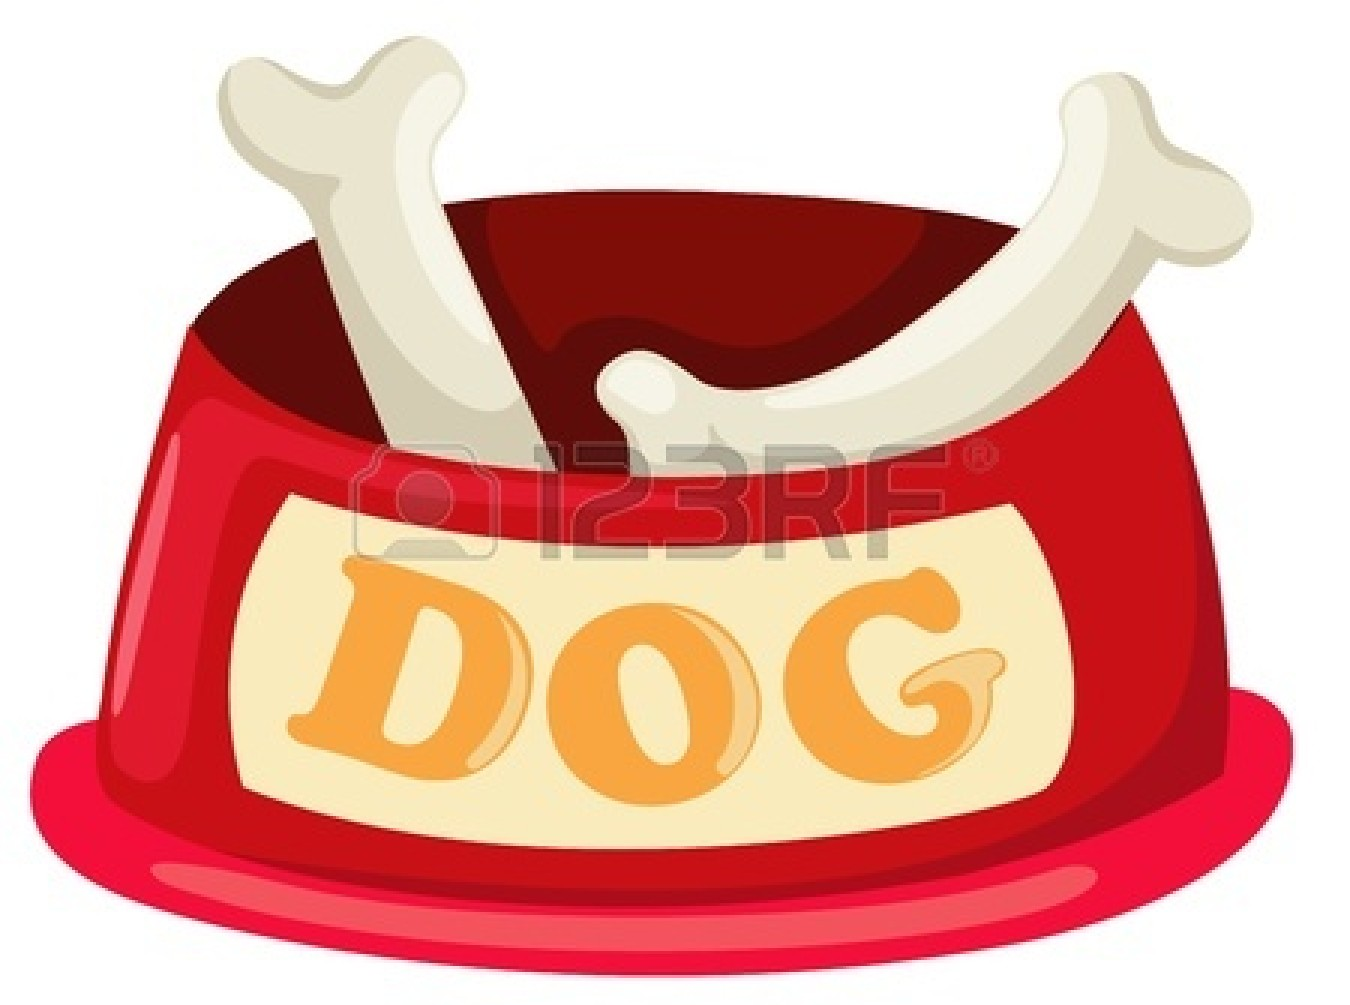 dog-bone-in-bowl-clipart-17623527-illustration-of-isolated-dog-bowl ...